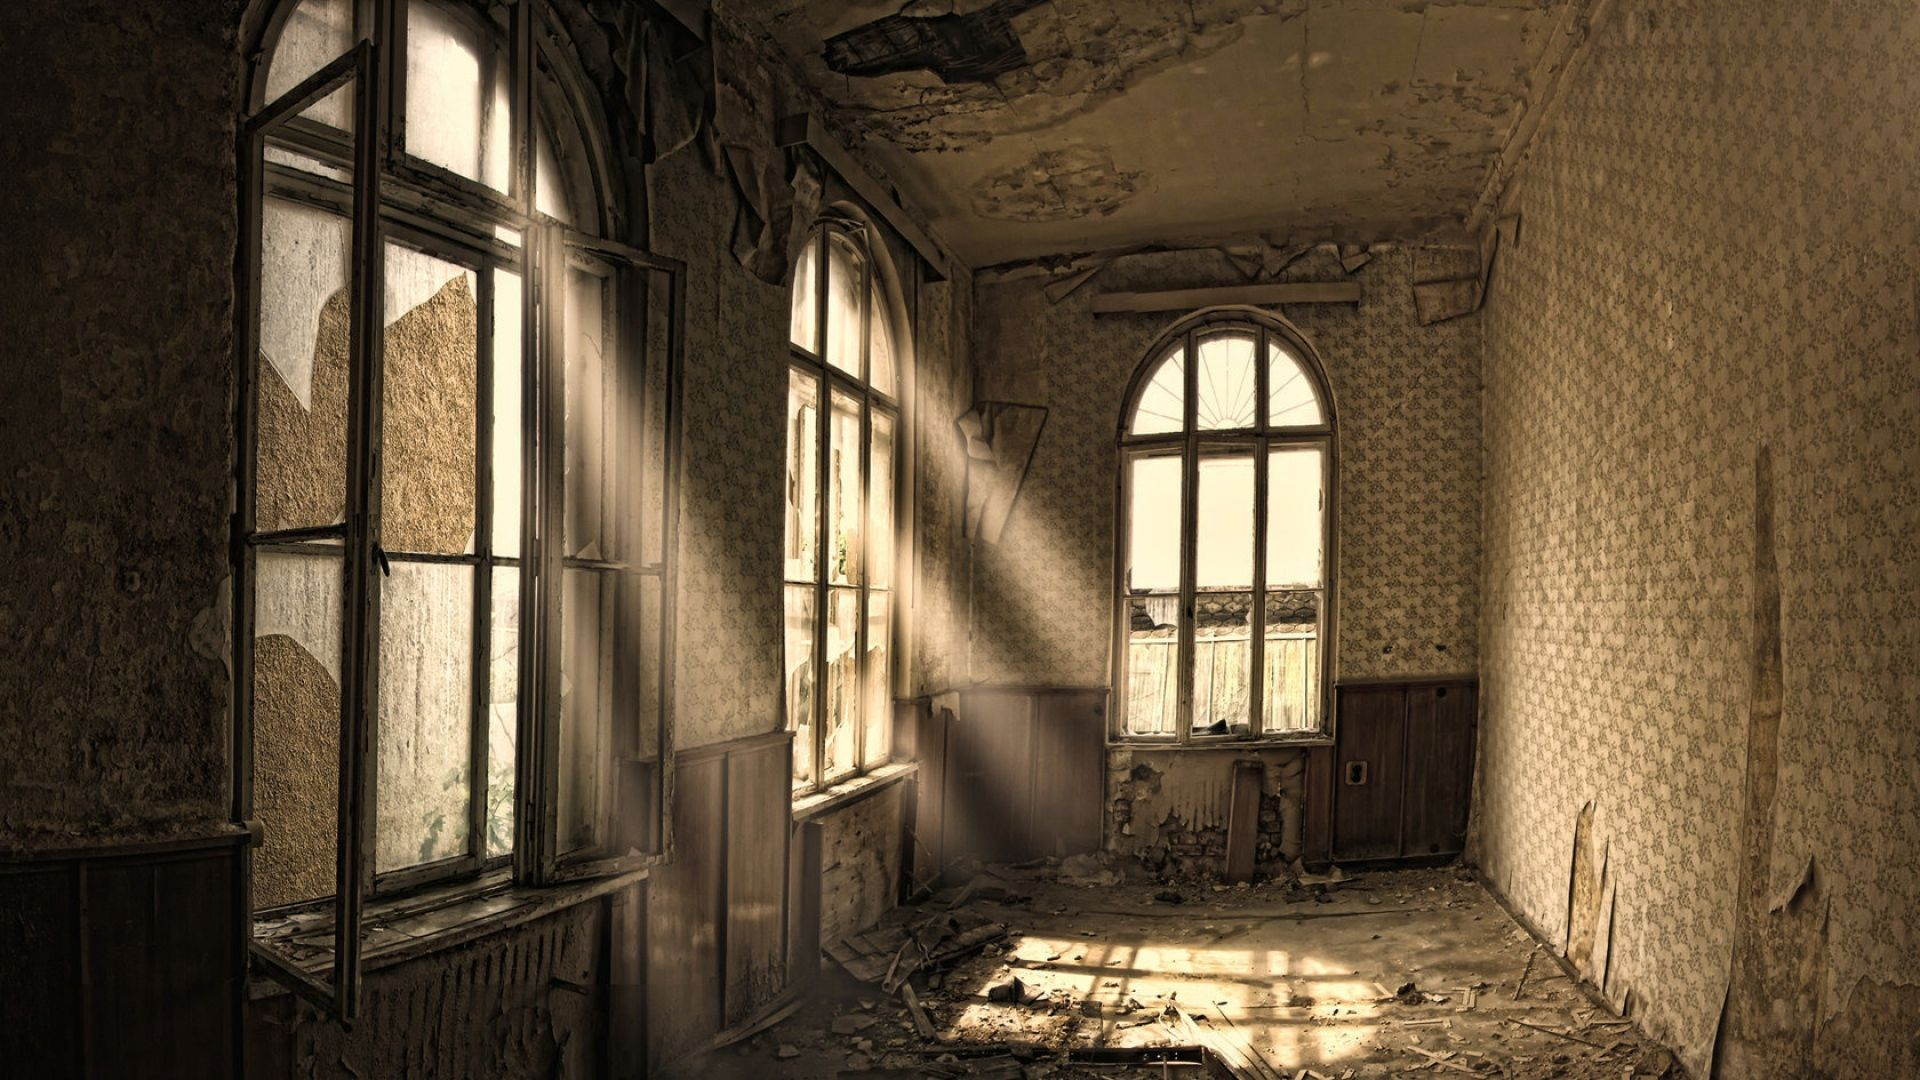 Download Wallpaper 1920x1080 Building Old Room Ruin Windows Full Hd 1080p Hd Background Windows Wallpaper Old Houses Home Wallpaper